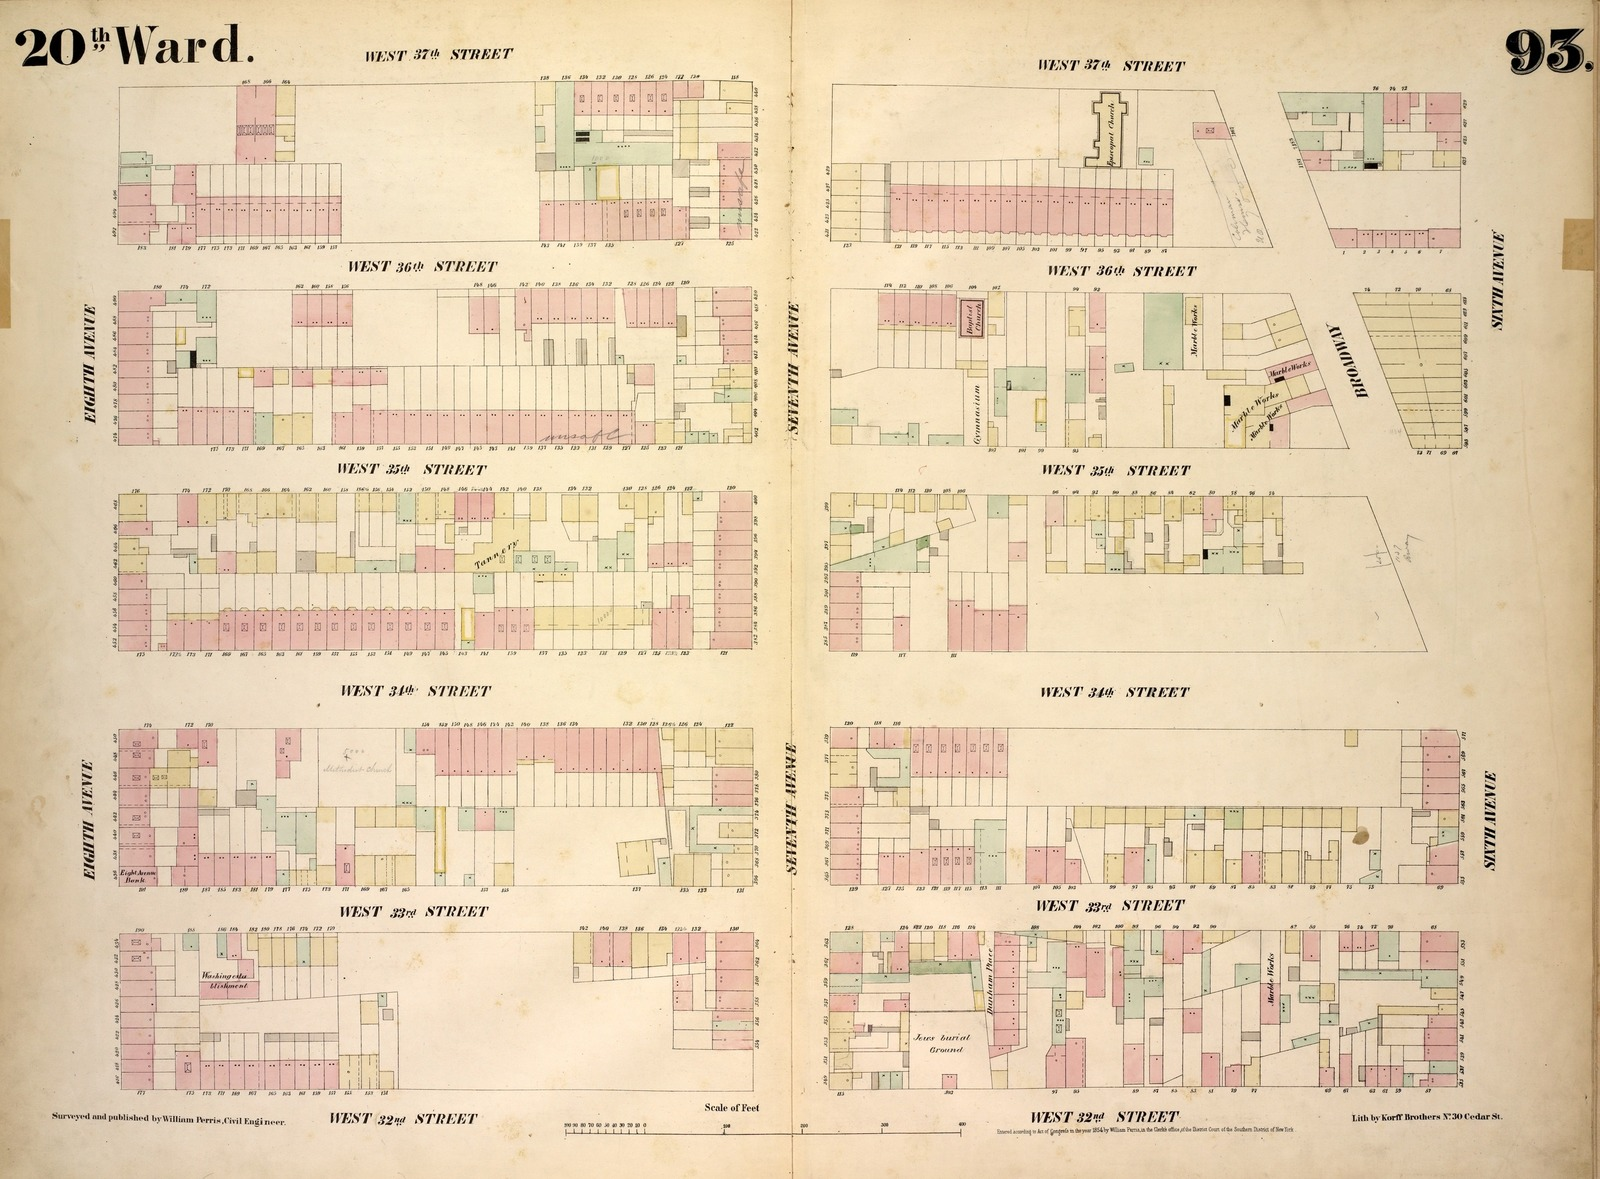 [Plate 93: Map bounded by West 37th Street, Sixth Avenue, West 32nd Street, Eighth Avenue.]